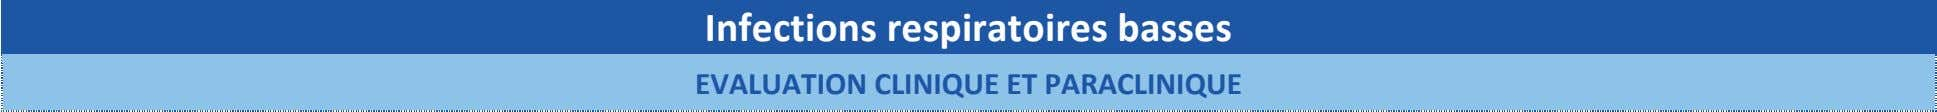 Infections respiratoires basses EVALUATION CLINIQUE ET PARACLINIQUE